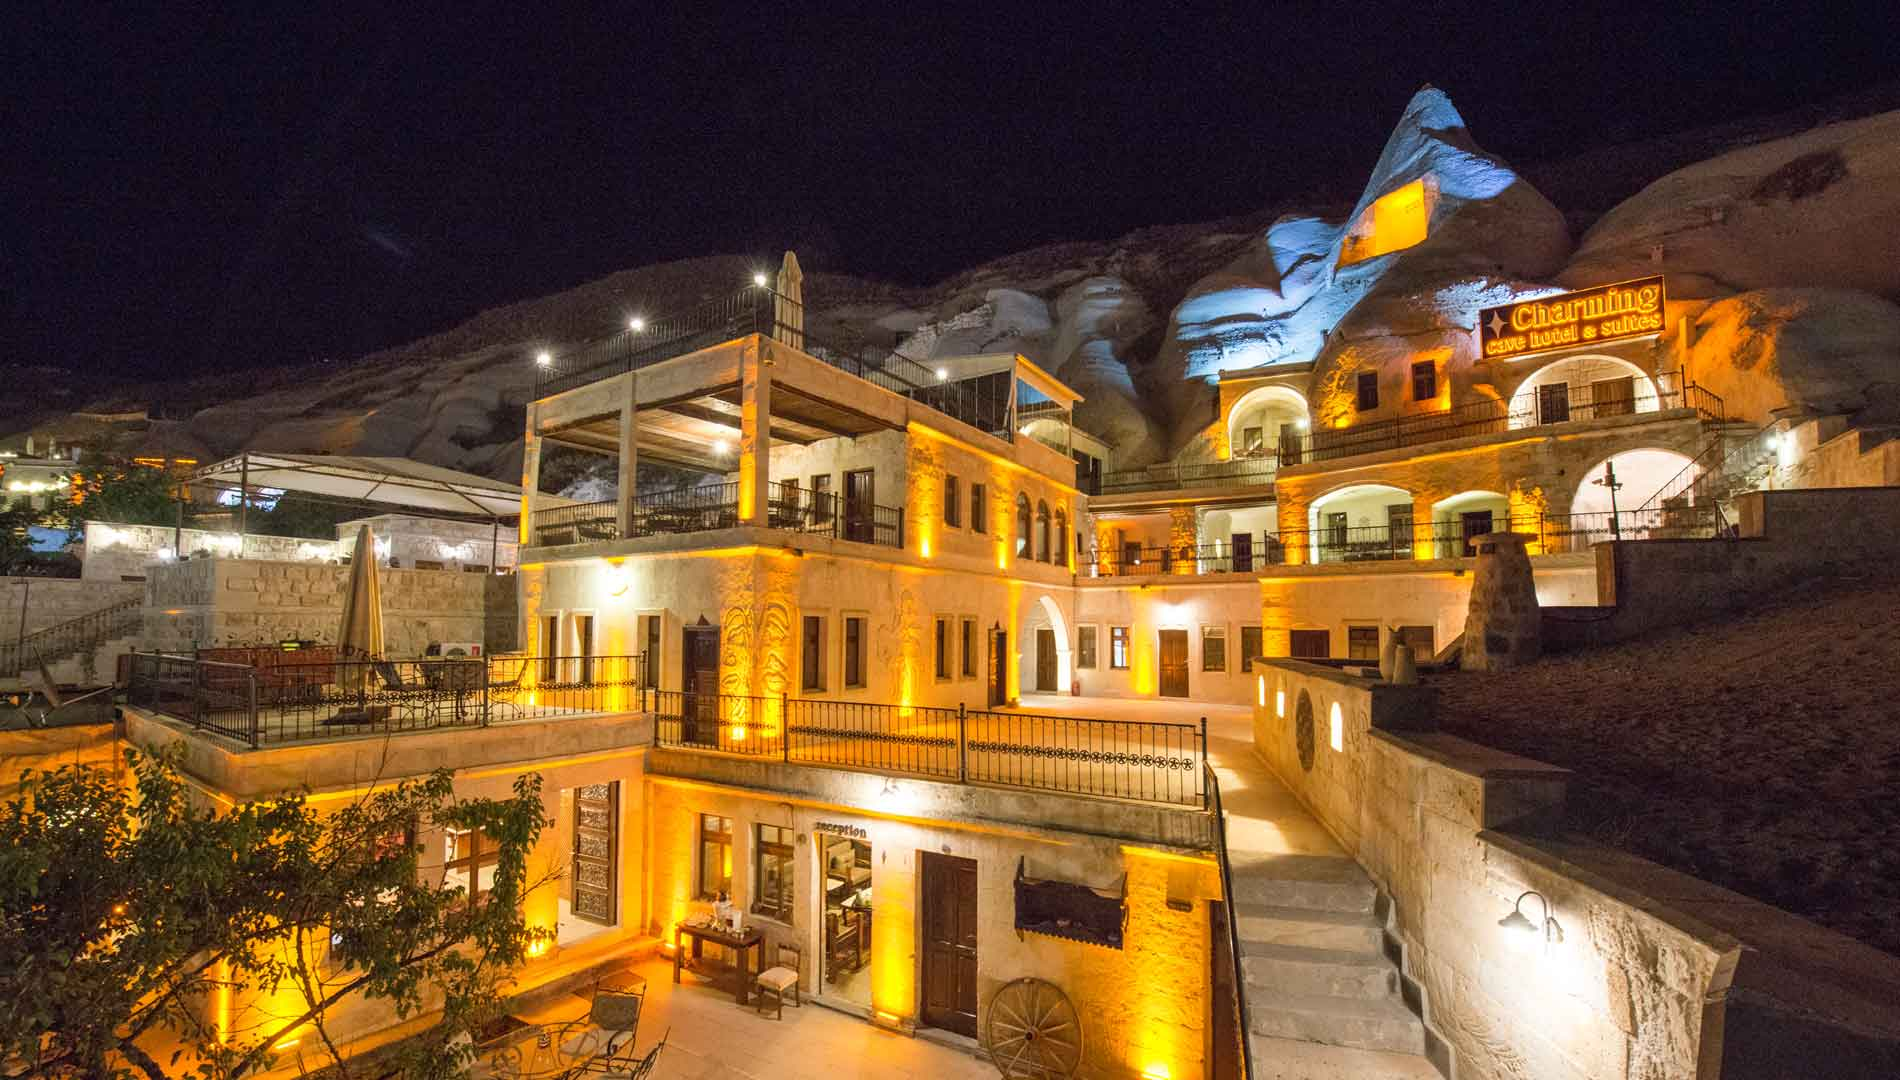 The charming cave hotel for Quaint hotel